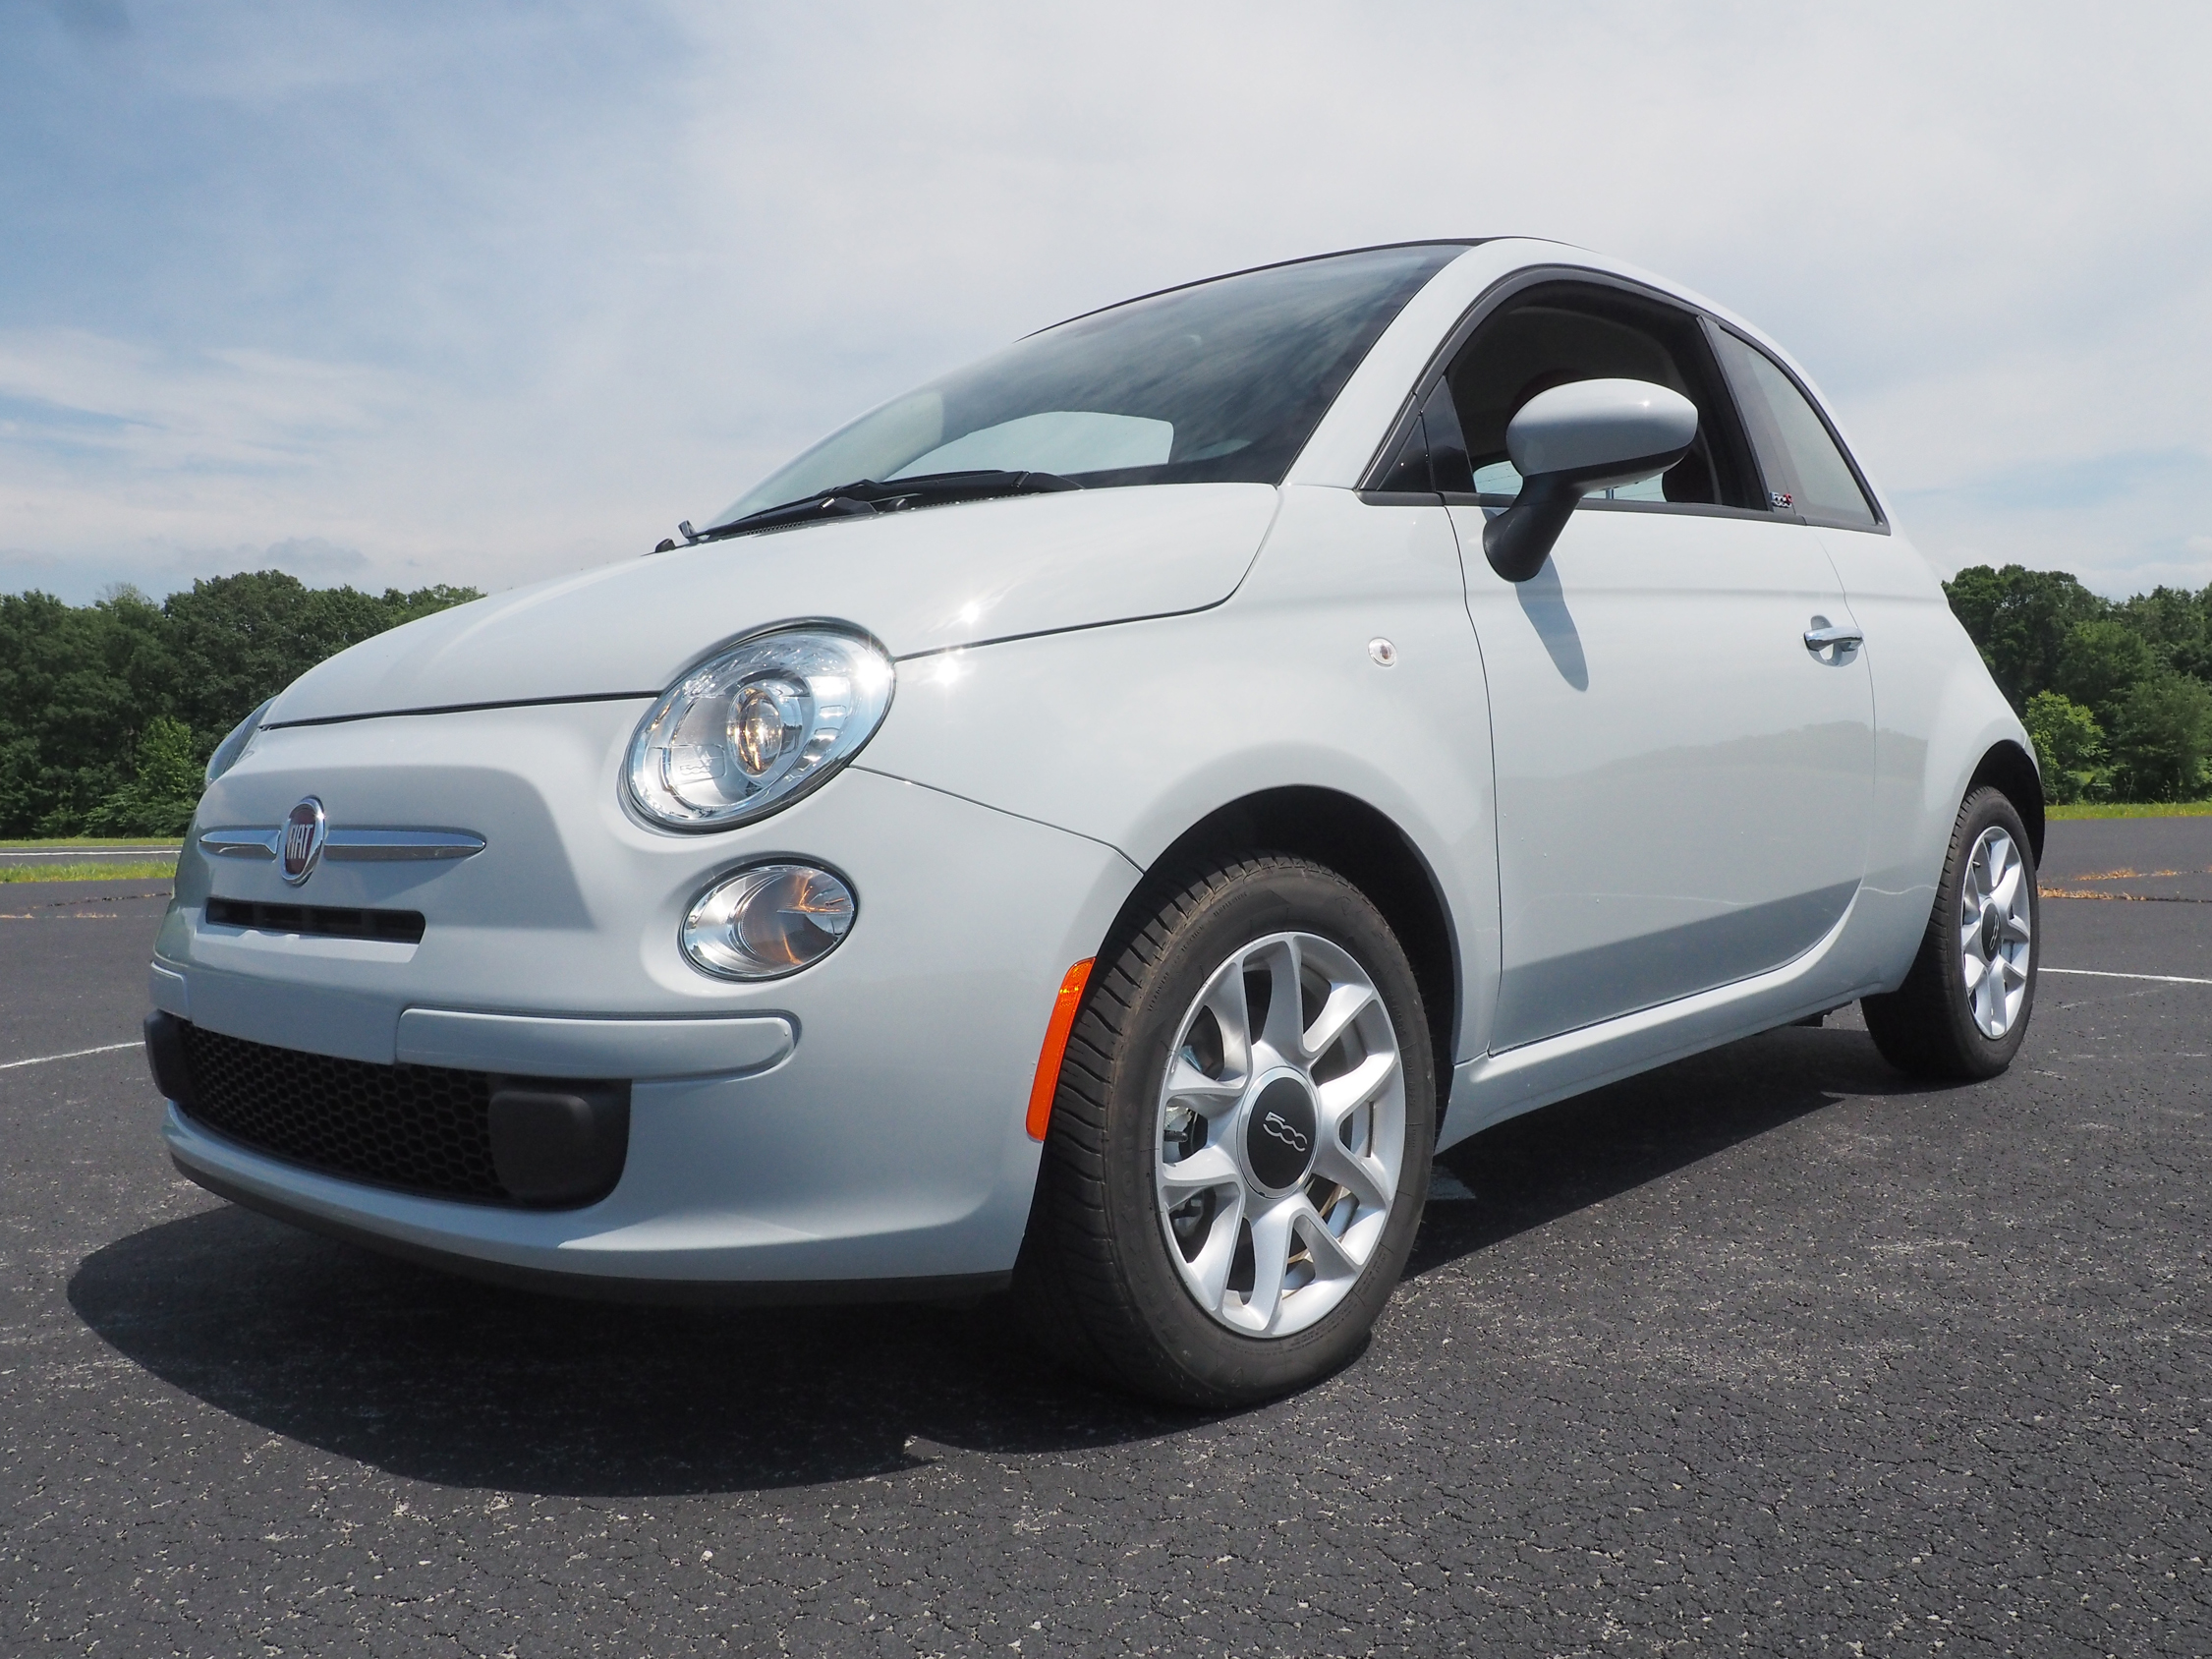 2017 fiat 500c - driven pictures, photos, wallpapers. | top speed